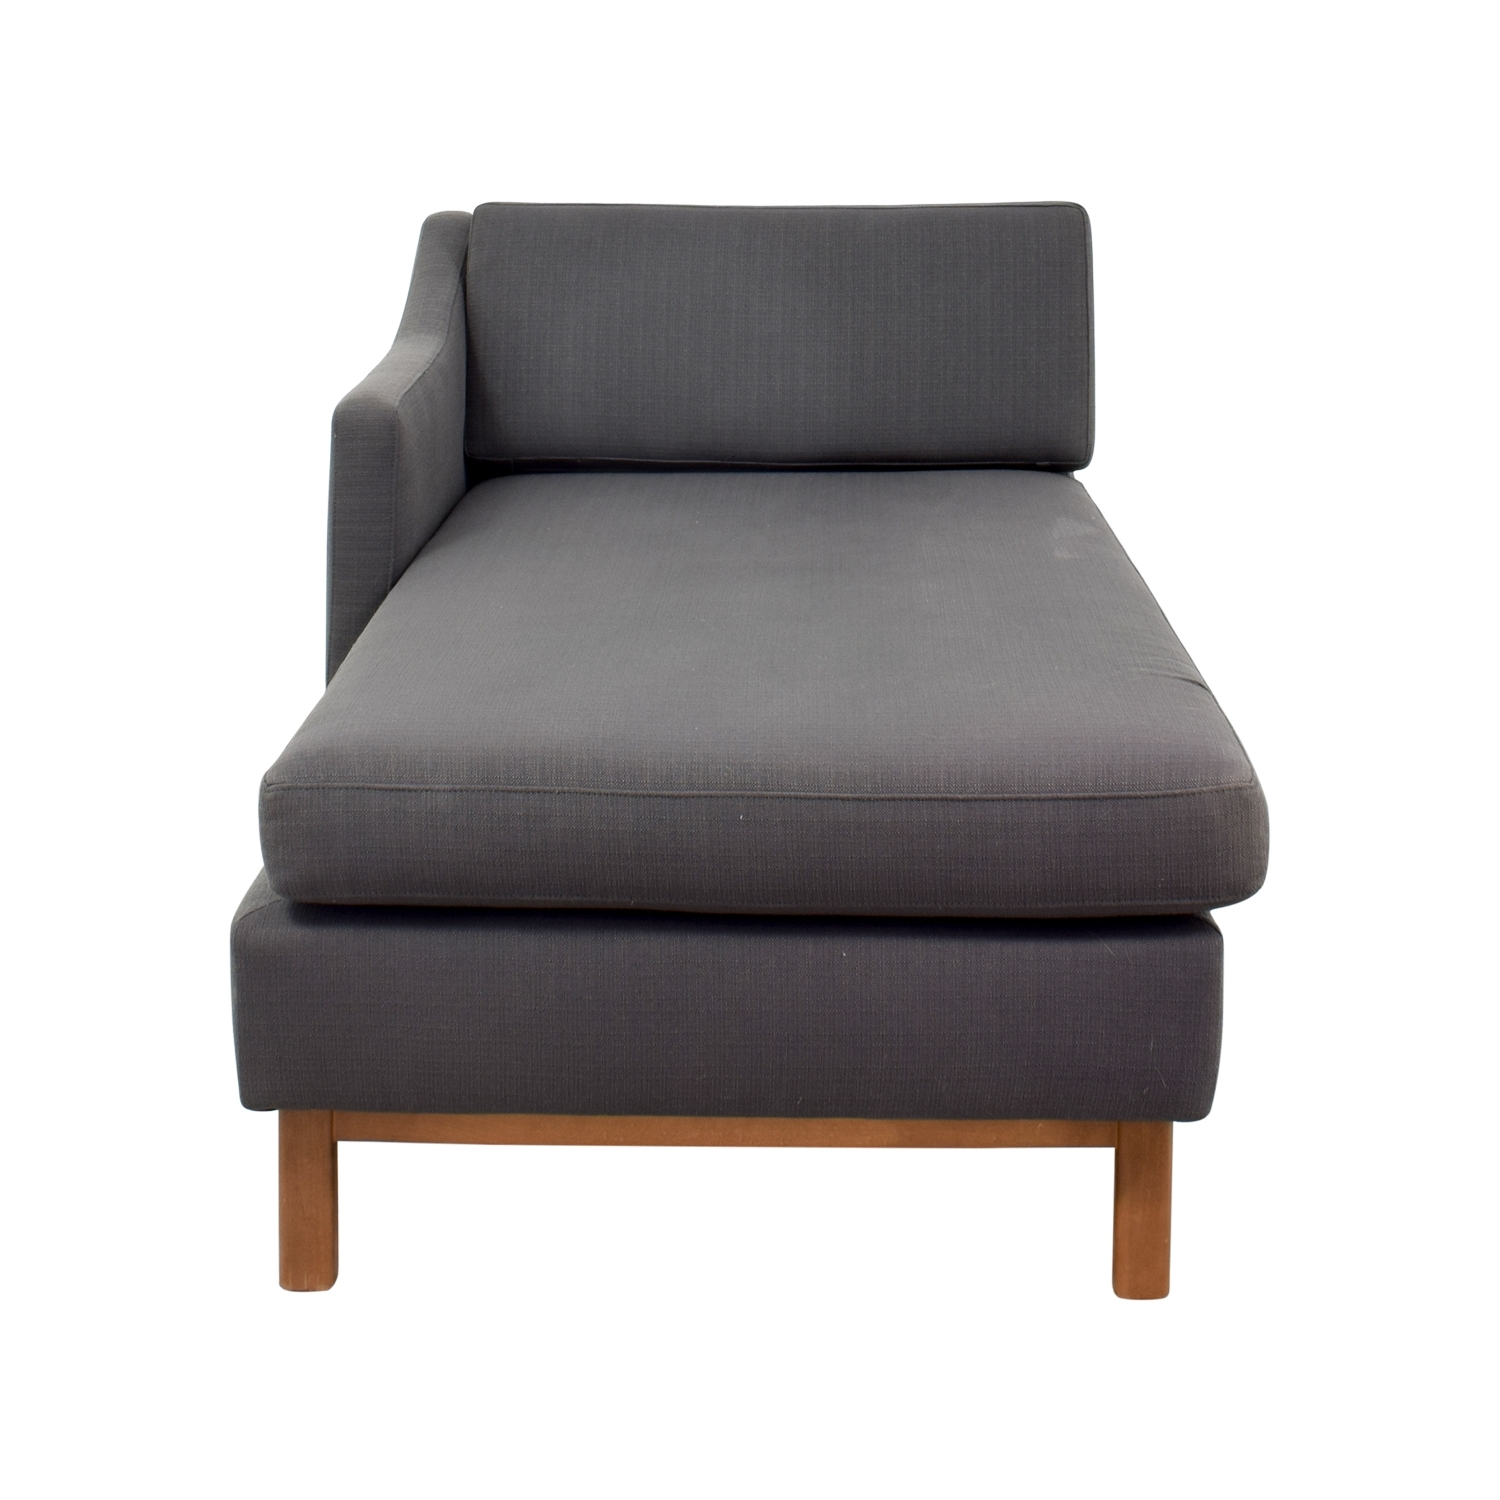 [%72% Off – Benchmade Modern Benchmade Modern Gray Single Arm Chaise Within Most Up To Date Gray Chaises|Gray Chaises Within Well Liked 72% Off – Benchmade Modern Benchmade Modern Gray Single Arm Chaise|Most Up To Date Gray Chaises Intended For 72% Off – Benchmade Modern Benchmade Modern Gray Single Arm Chaise|Most Recent 72% Off – Benchmade Modern Benchmade Modern Gray Single Arm Chaise Within Gray Chaises%] (View 9 of 15)